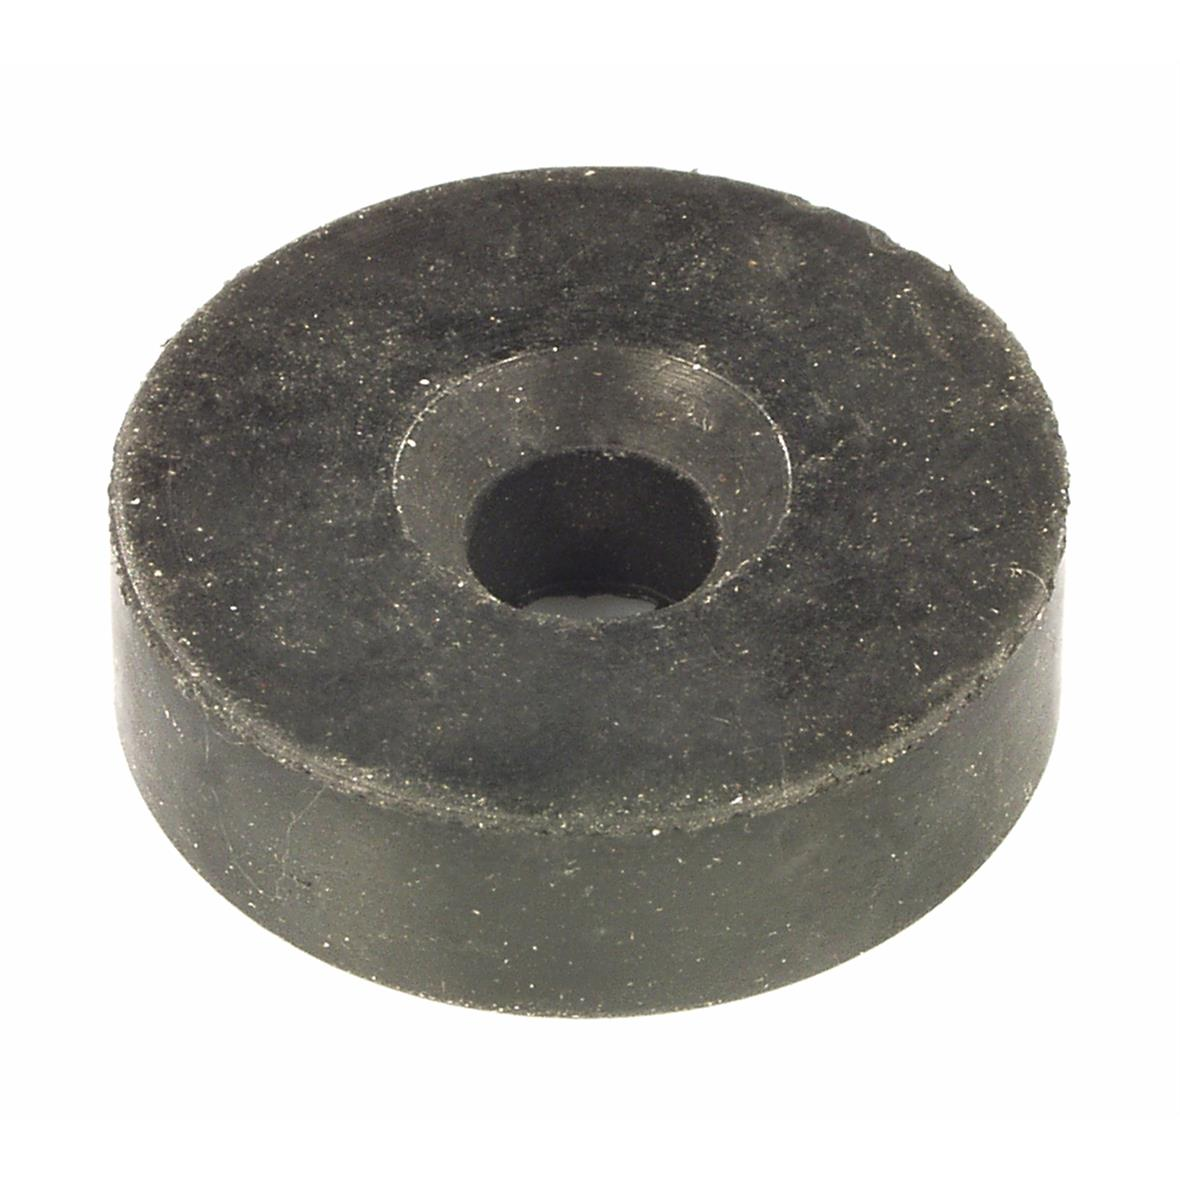 Product Image for 'Rubber Engine Mounting Bush engine swing-arm pivot 48x13x14 mm, right, PIAGGIOTitle'